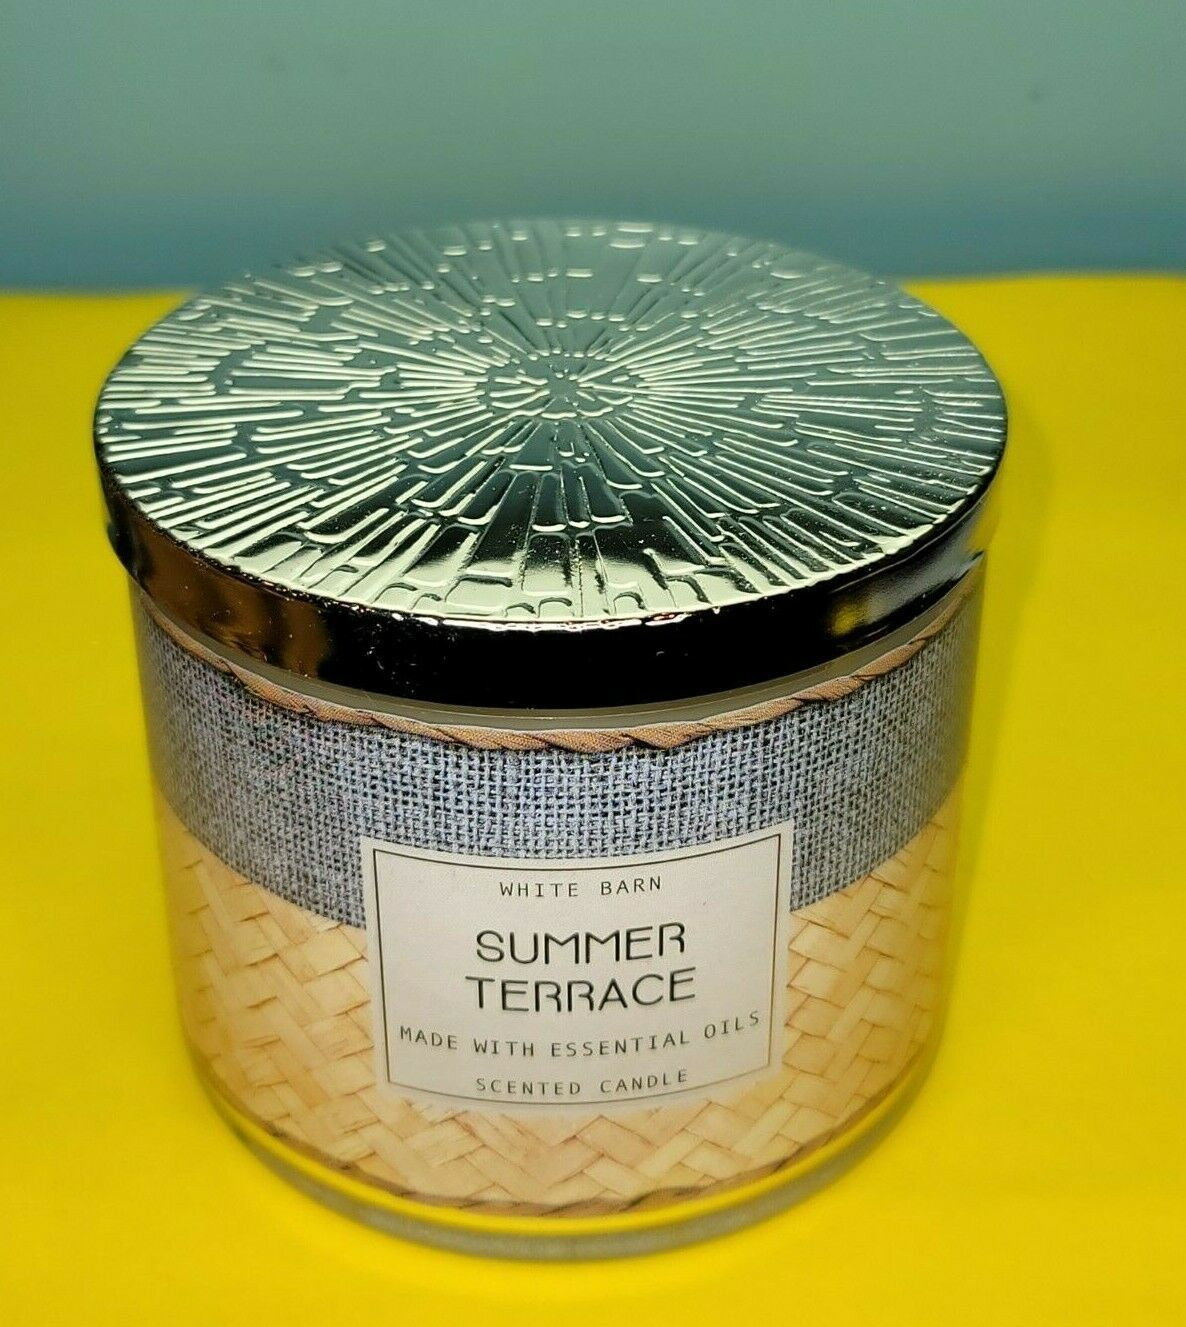 Primary image for Bath & Body Works White Barn Summer Terrace Jar Essential Oil Candle 14.5